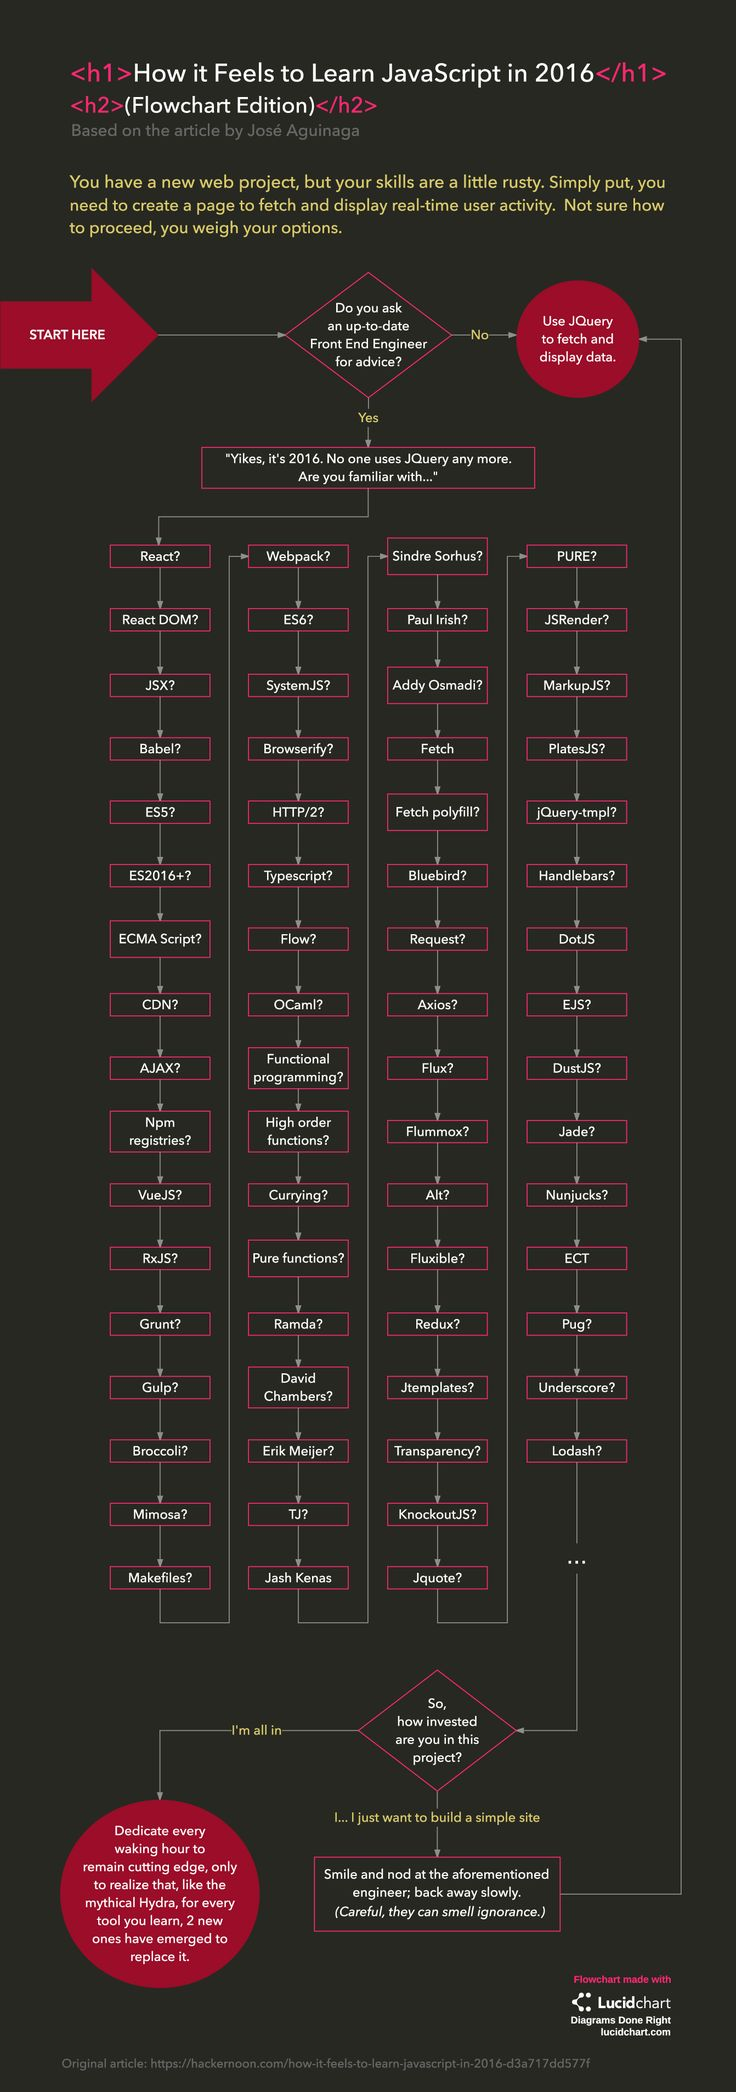 52 best templates images on pinterest role models template and jos aguinagas hackernoon post about learning javascript struck a chord with frustrated programmers check out our condensed flowchart version of this ccuart Image collections